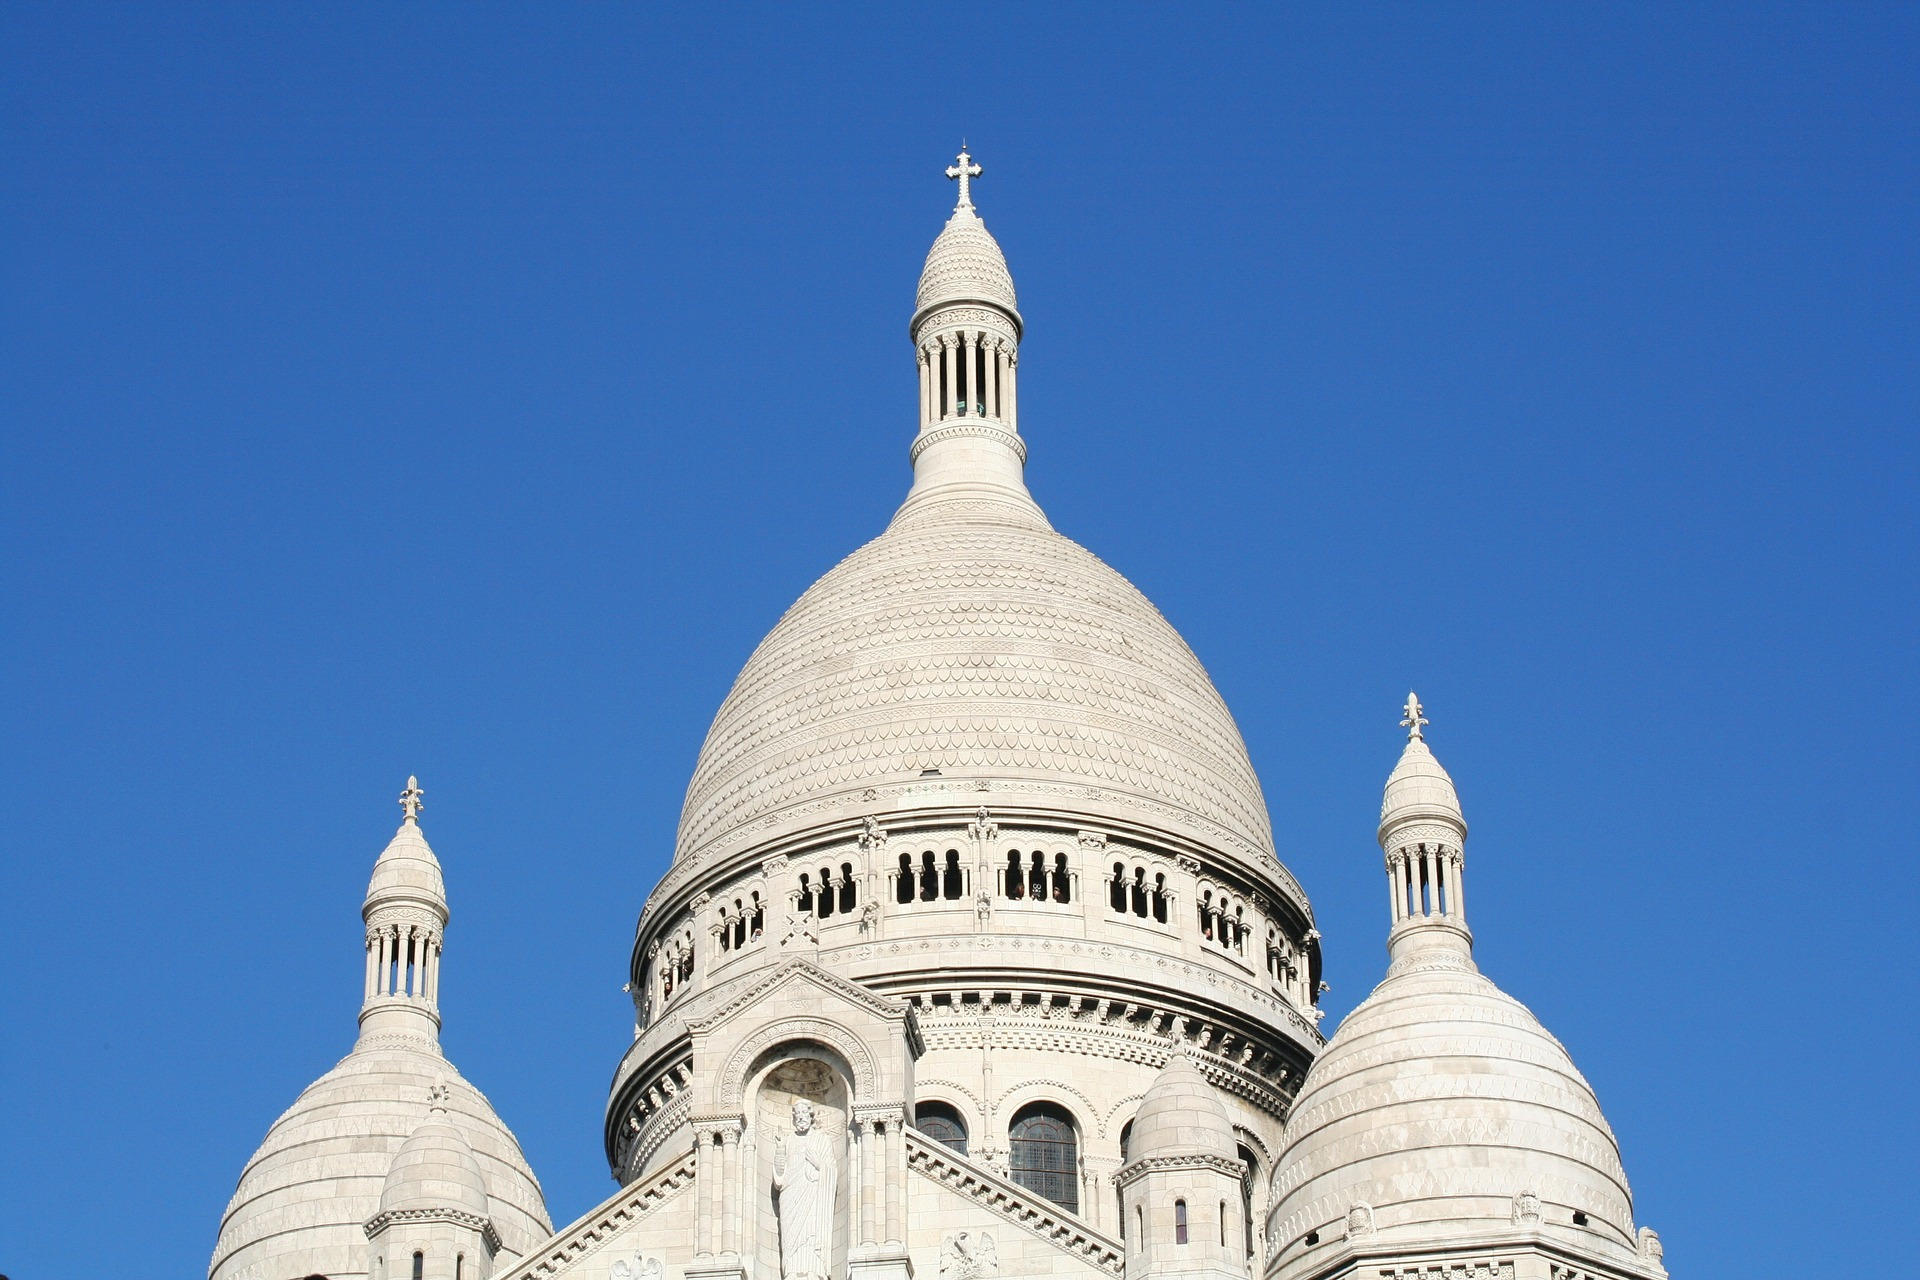 How to do Montmartre in 24 hours